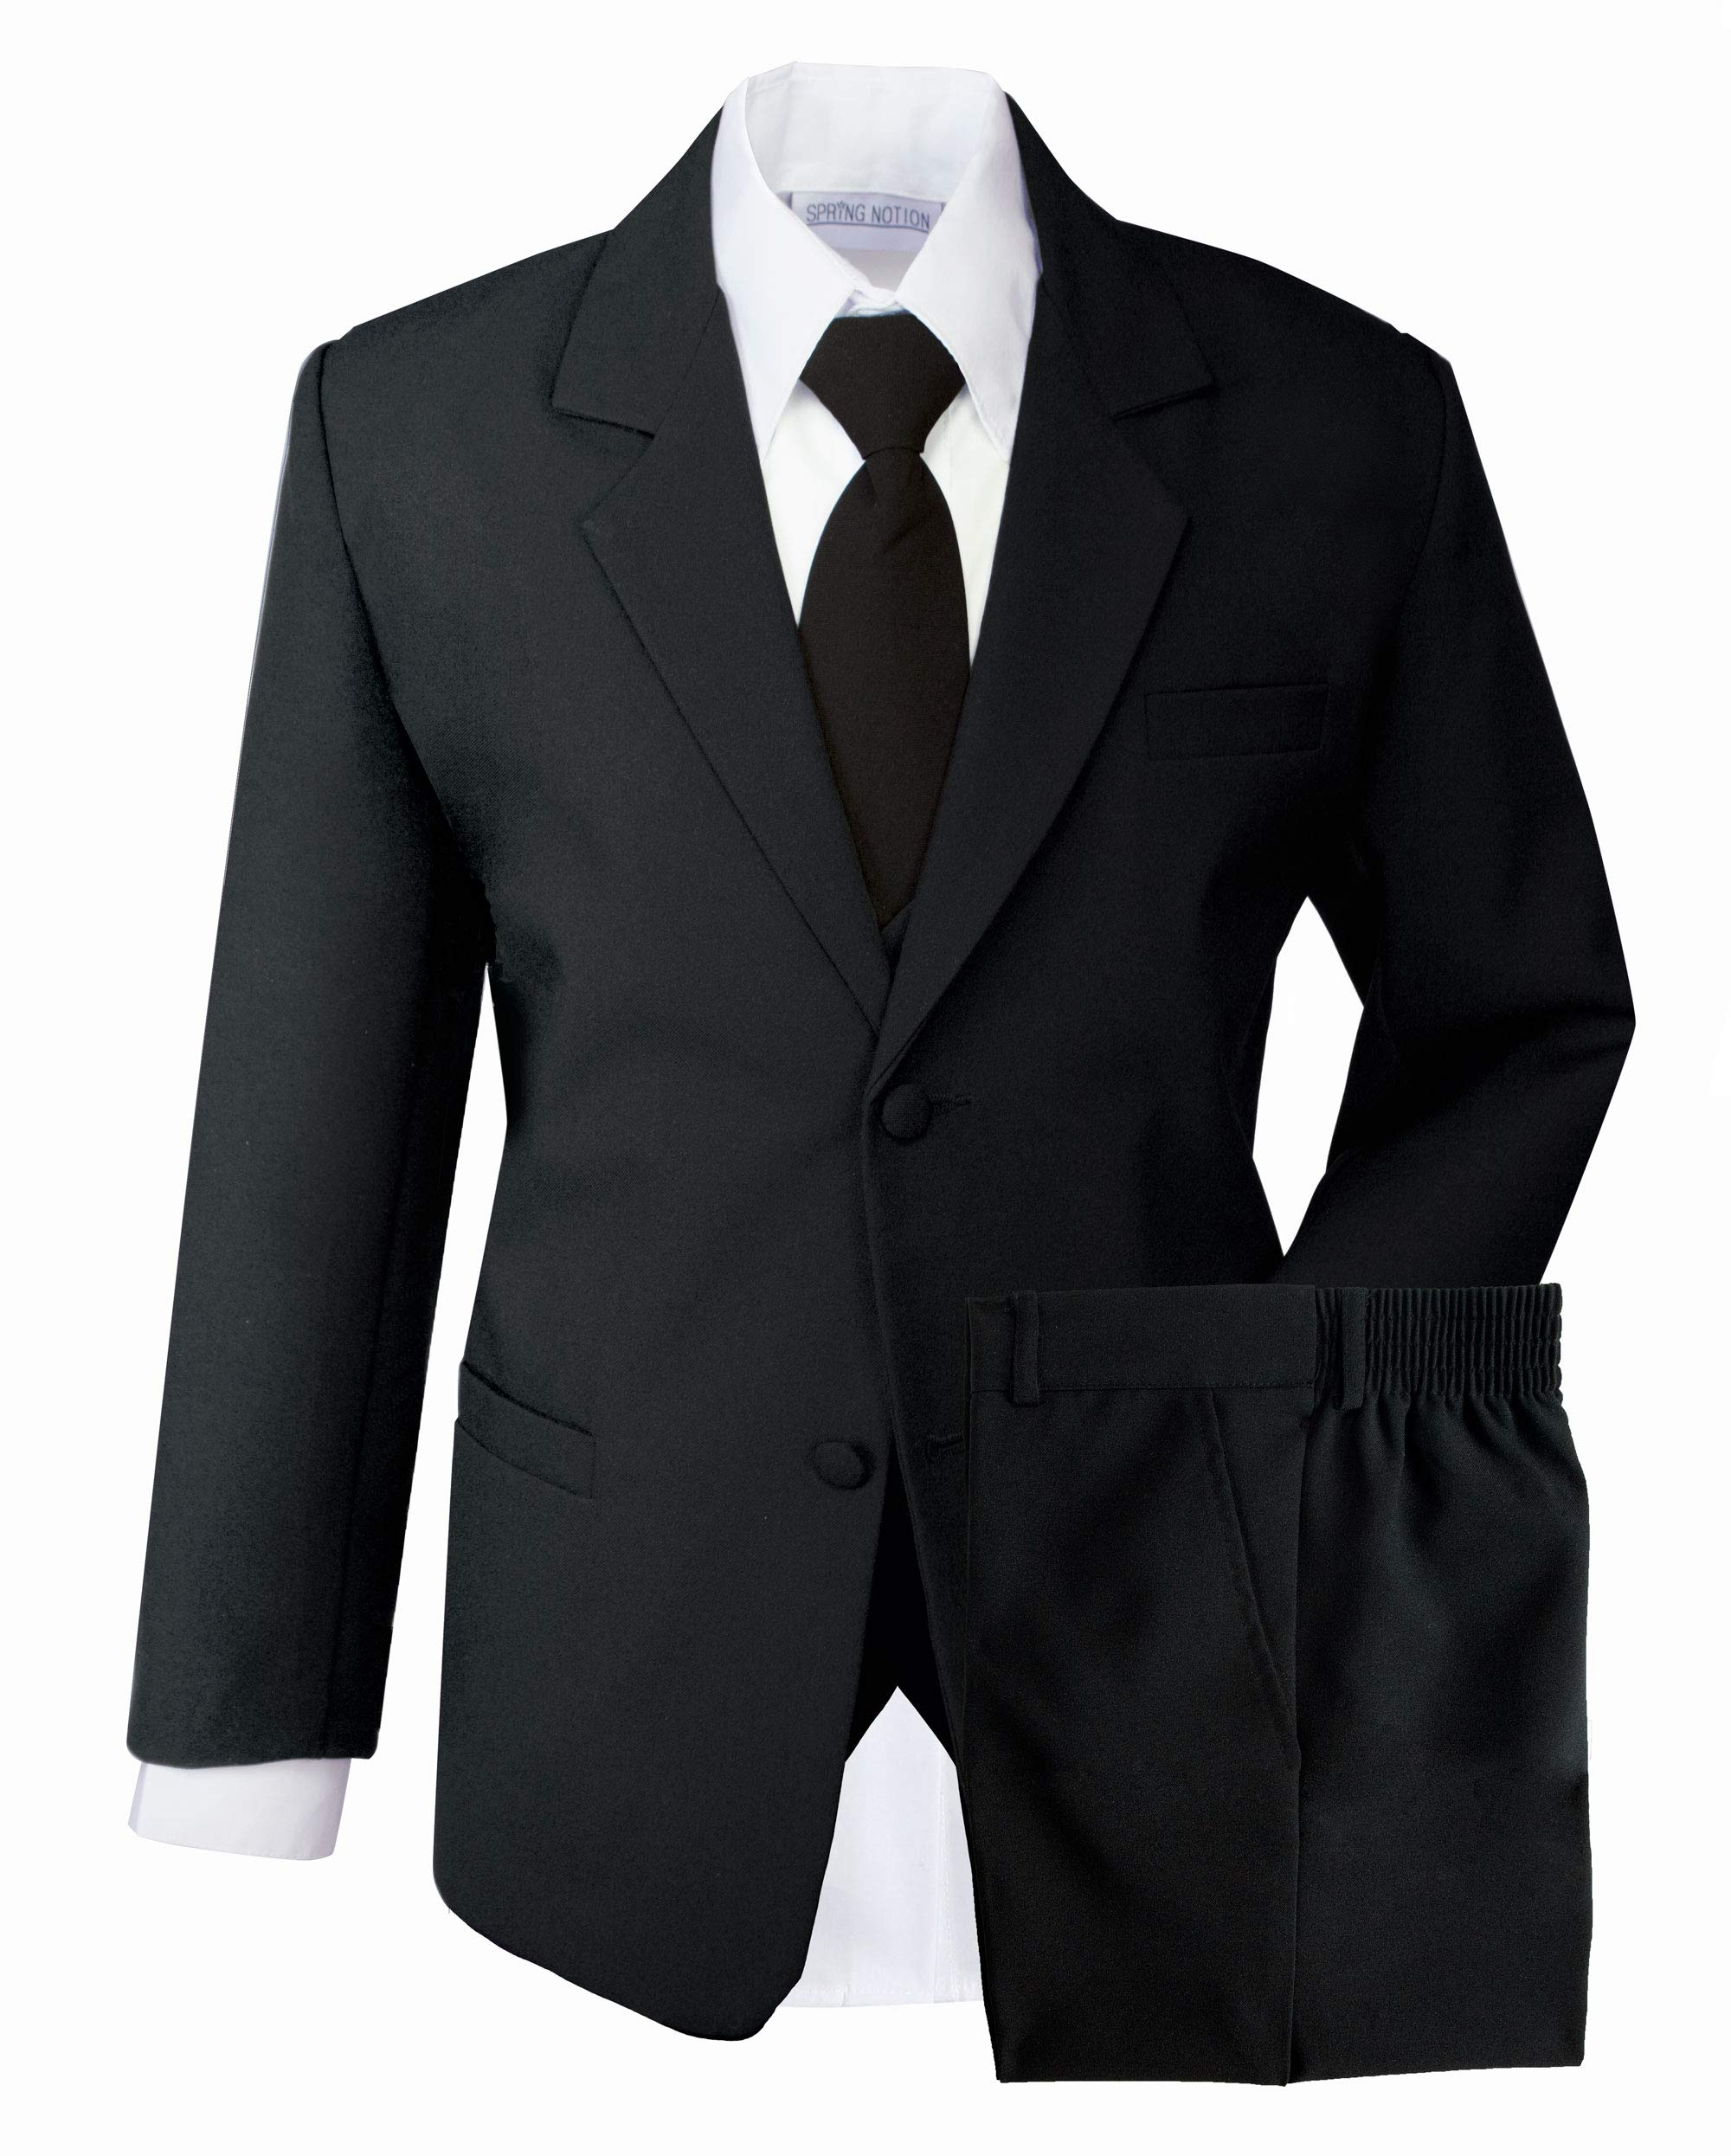 Spring Notion Boys' Formal Black Dress Suit Set 4T